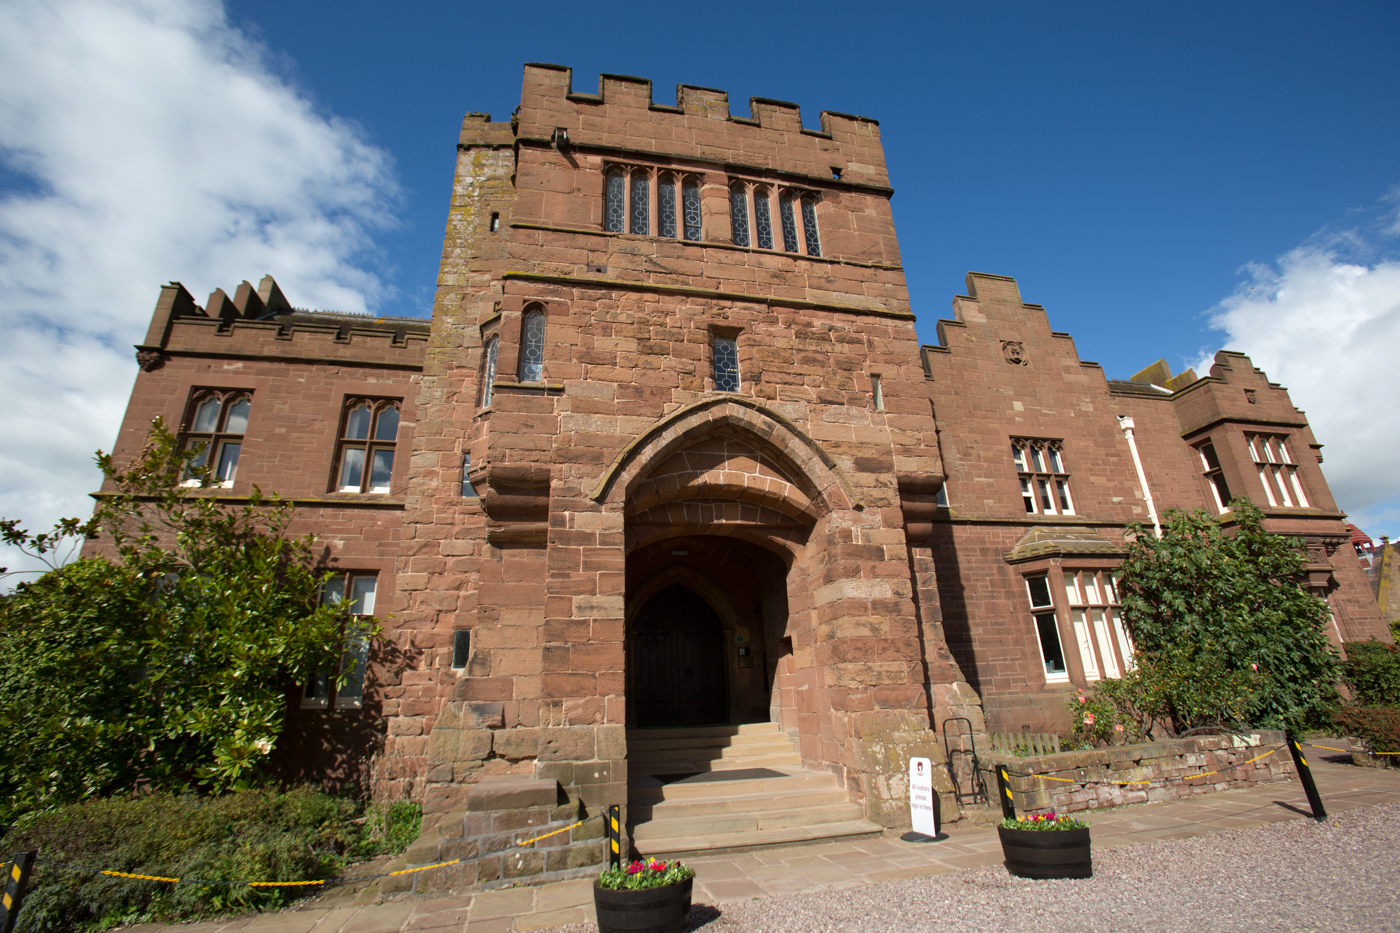 Village of Saighton, Cheshire, England. Picturesque view of the historic, Grade I listed, Abbey Gate College Gatehouse.